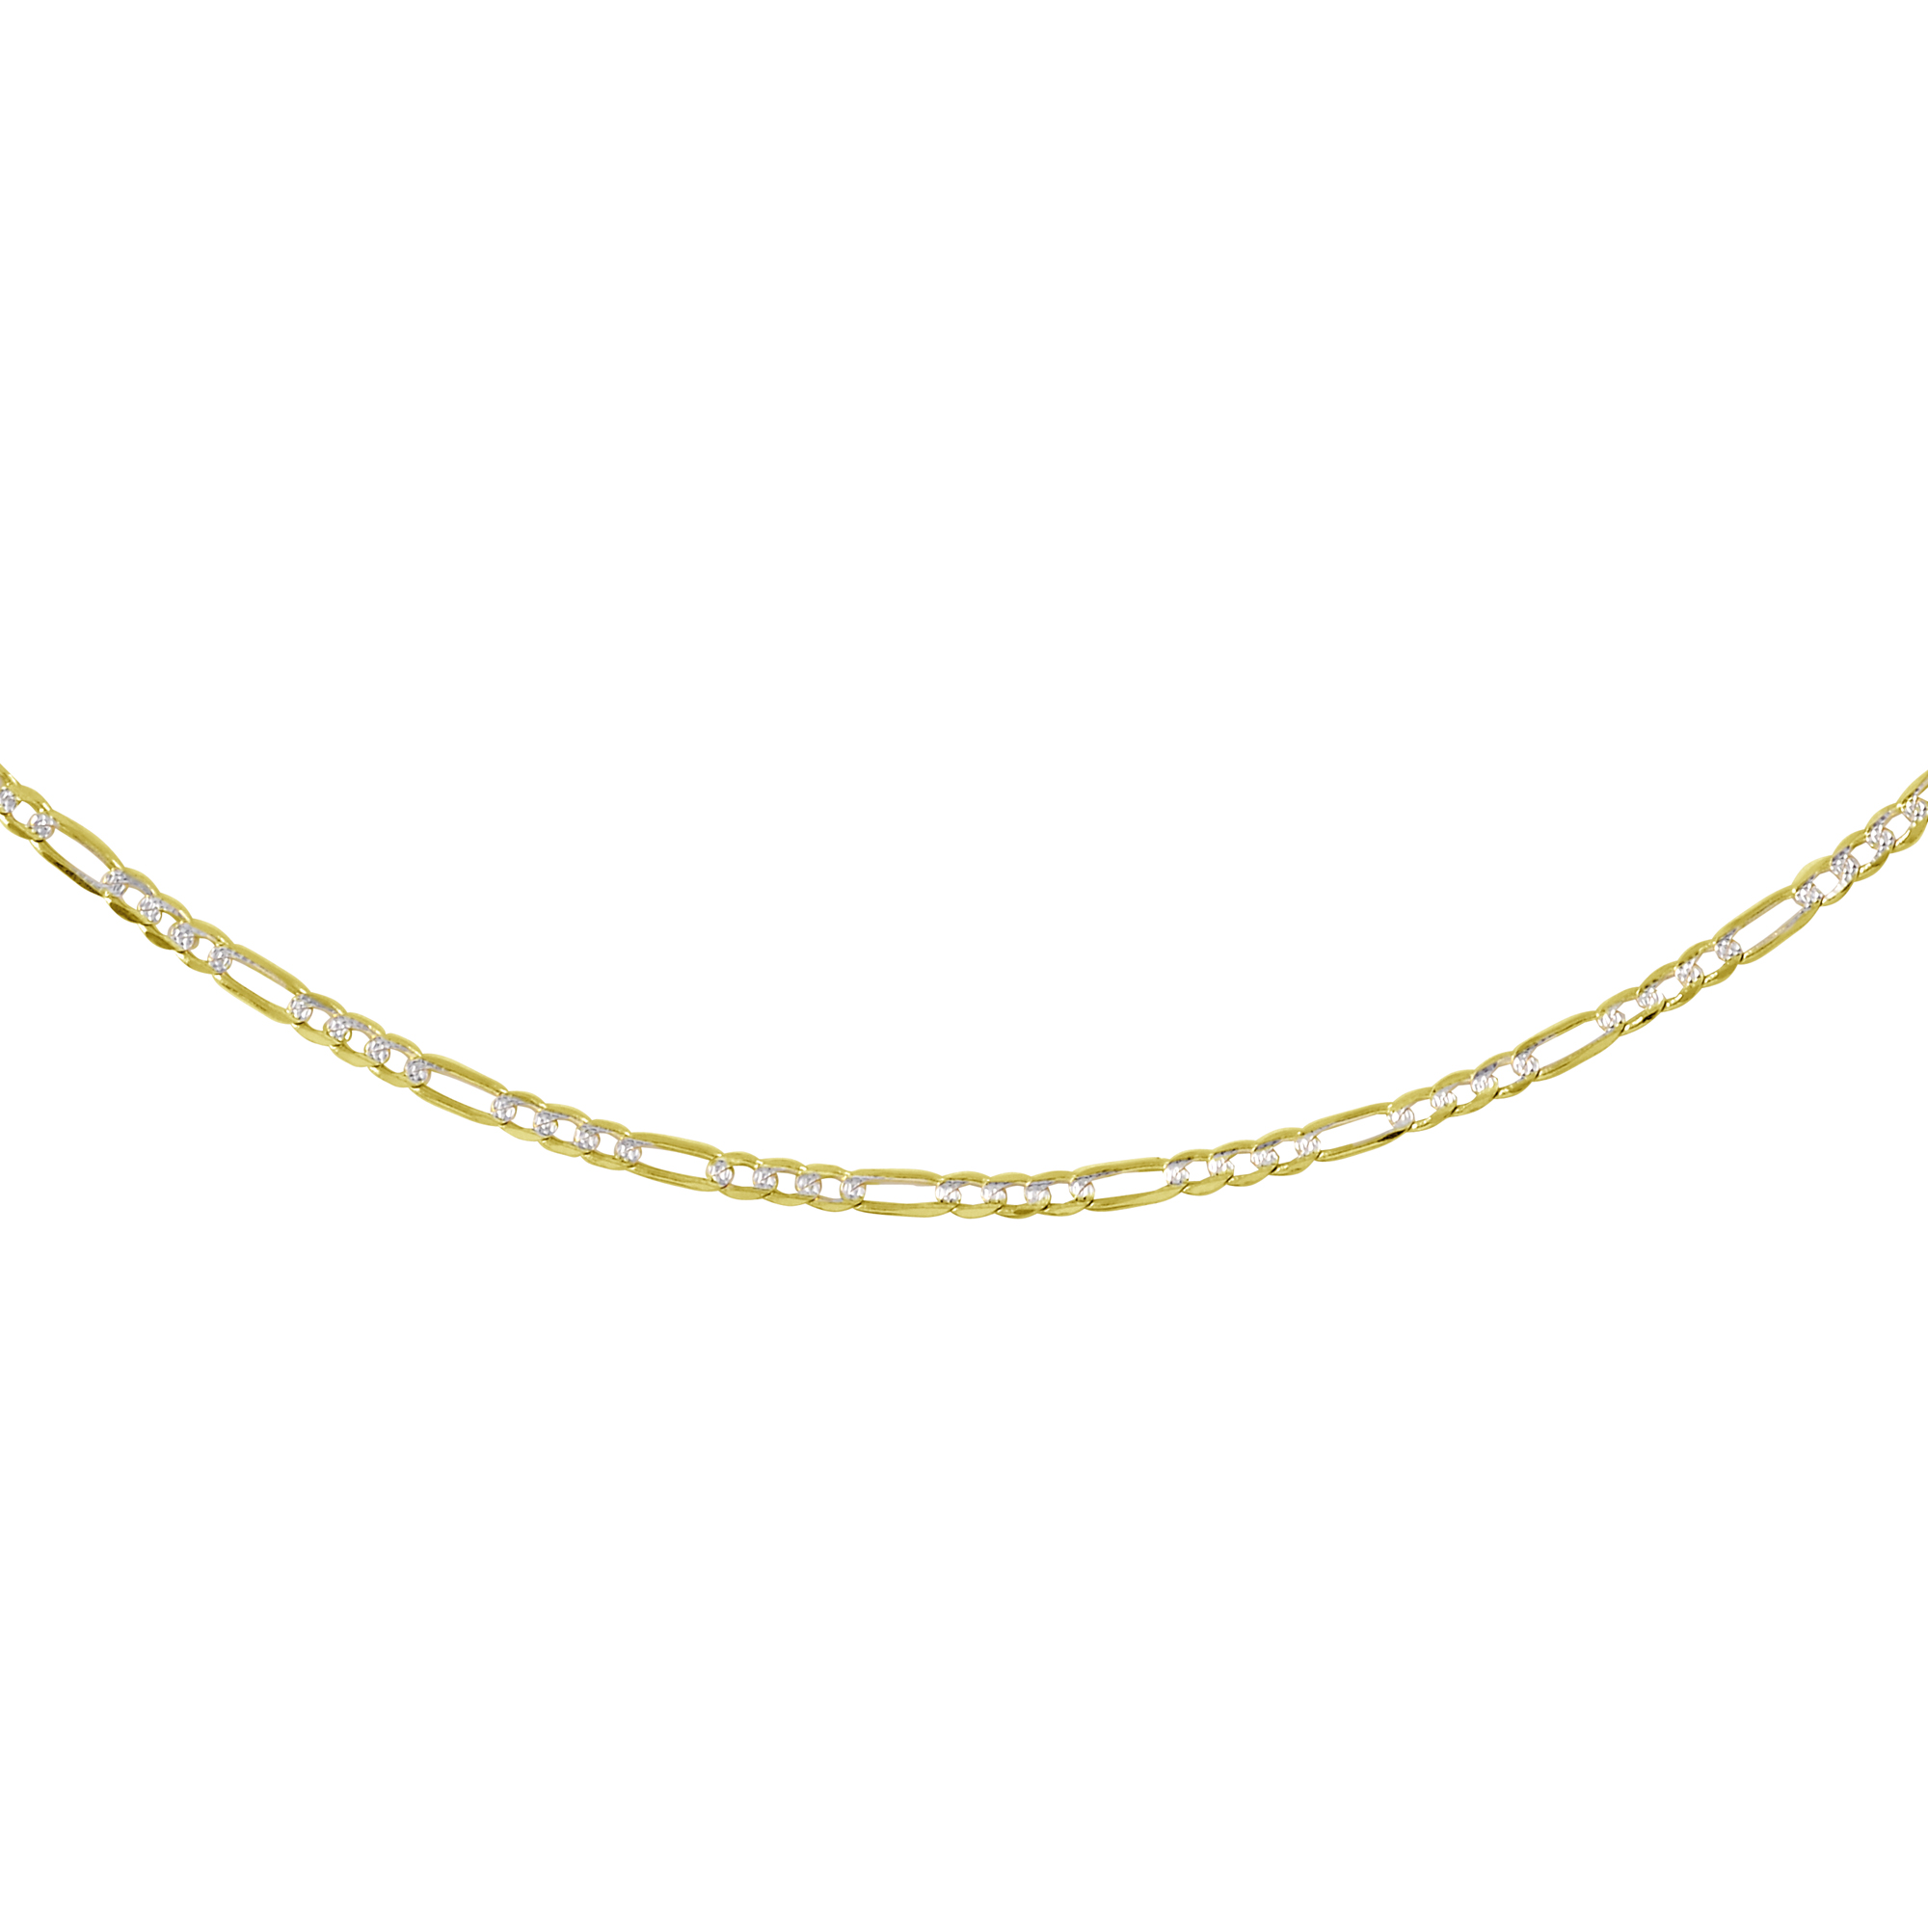 7'' Figaro bracelet - 10K 2 tone Gold (yellow and white)